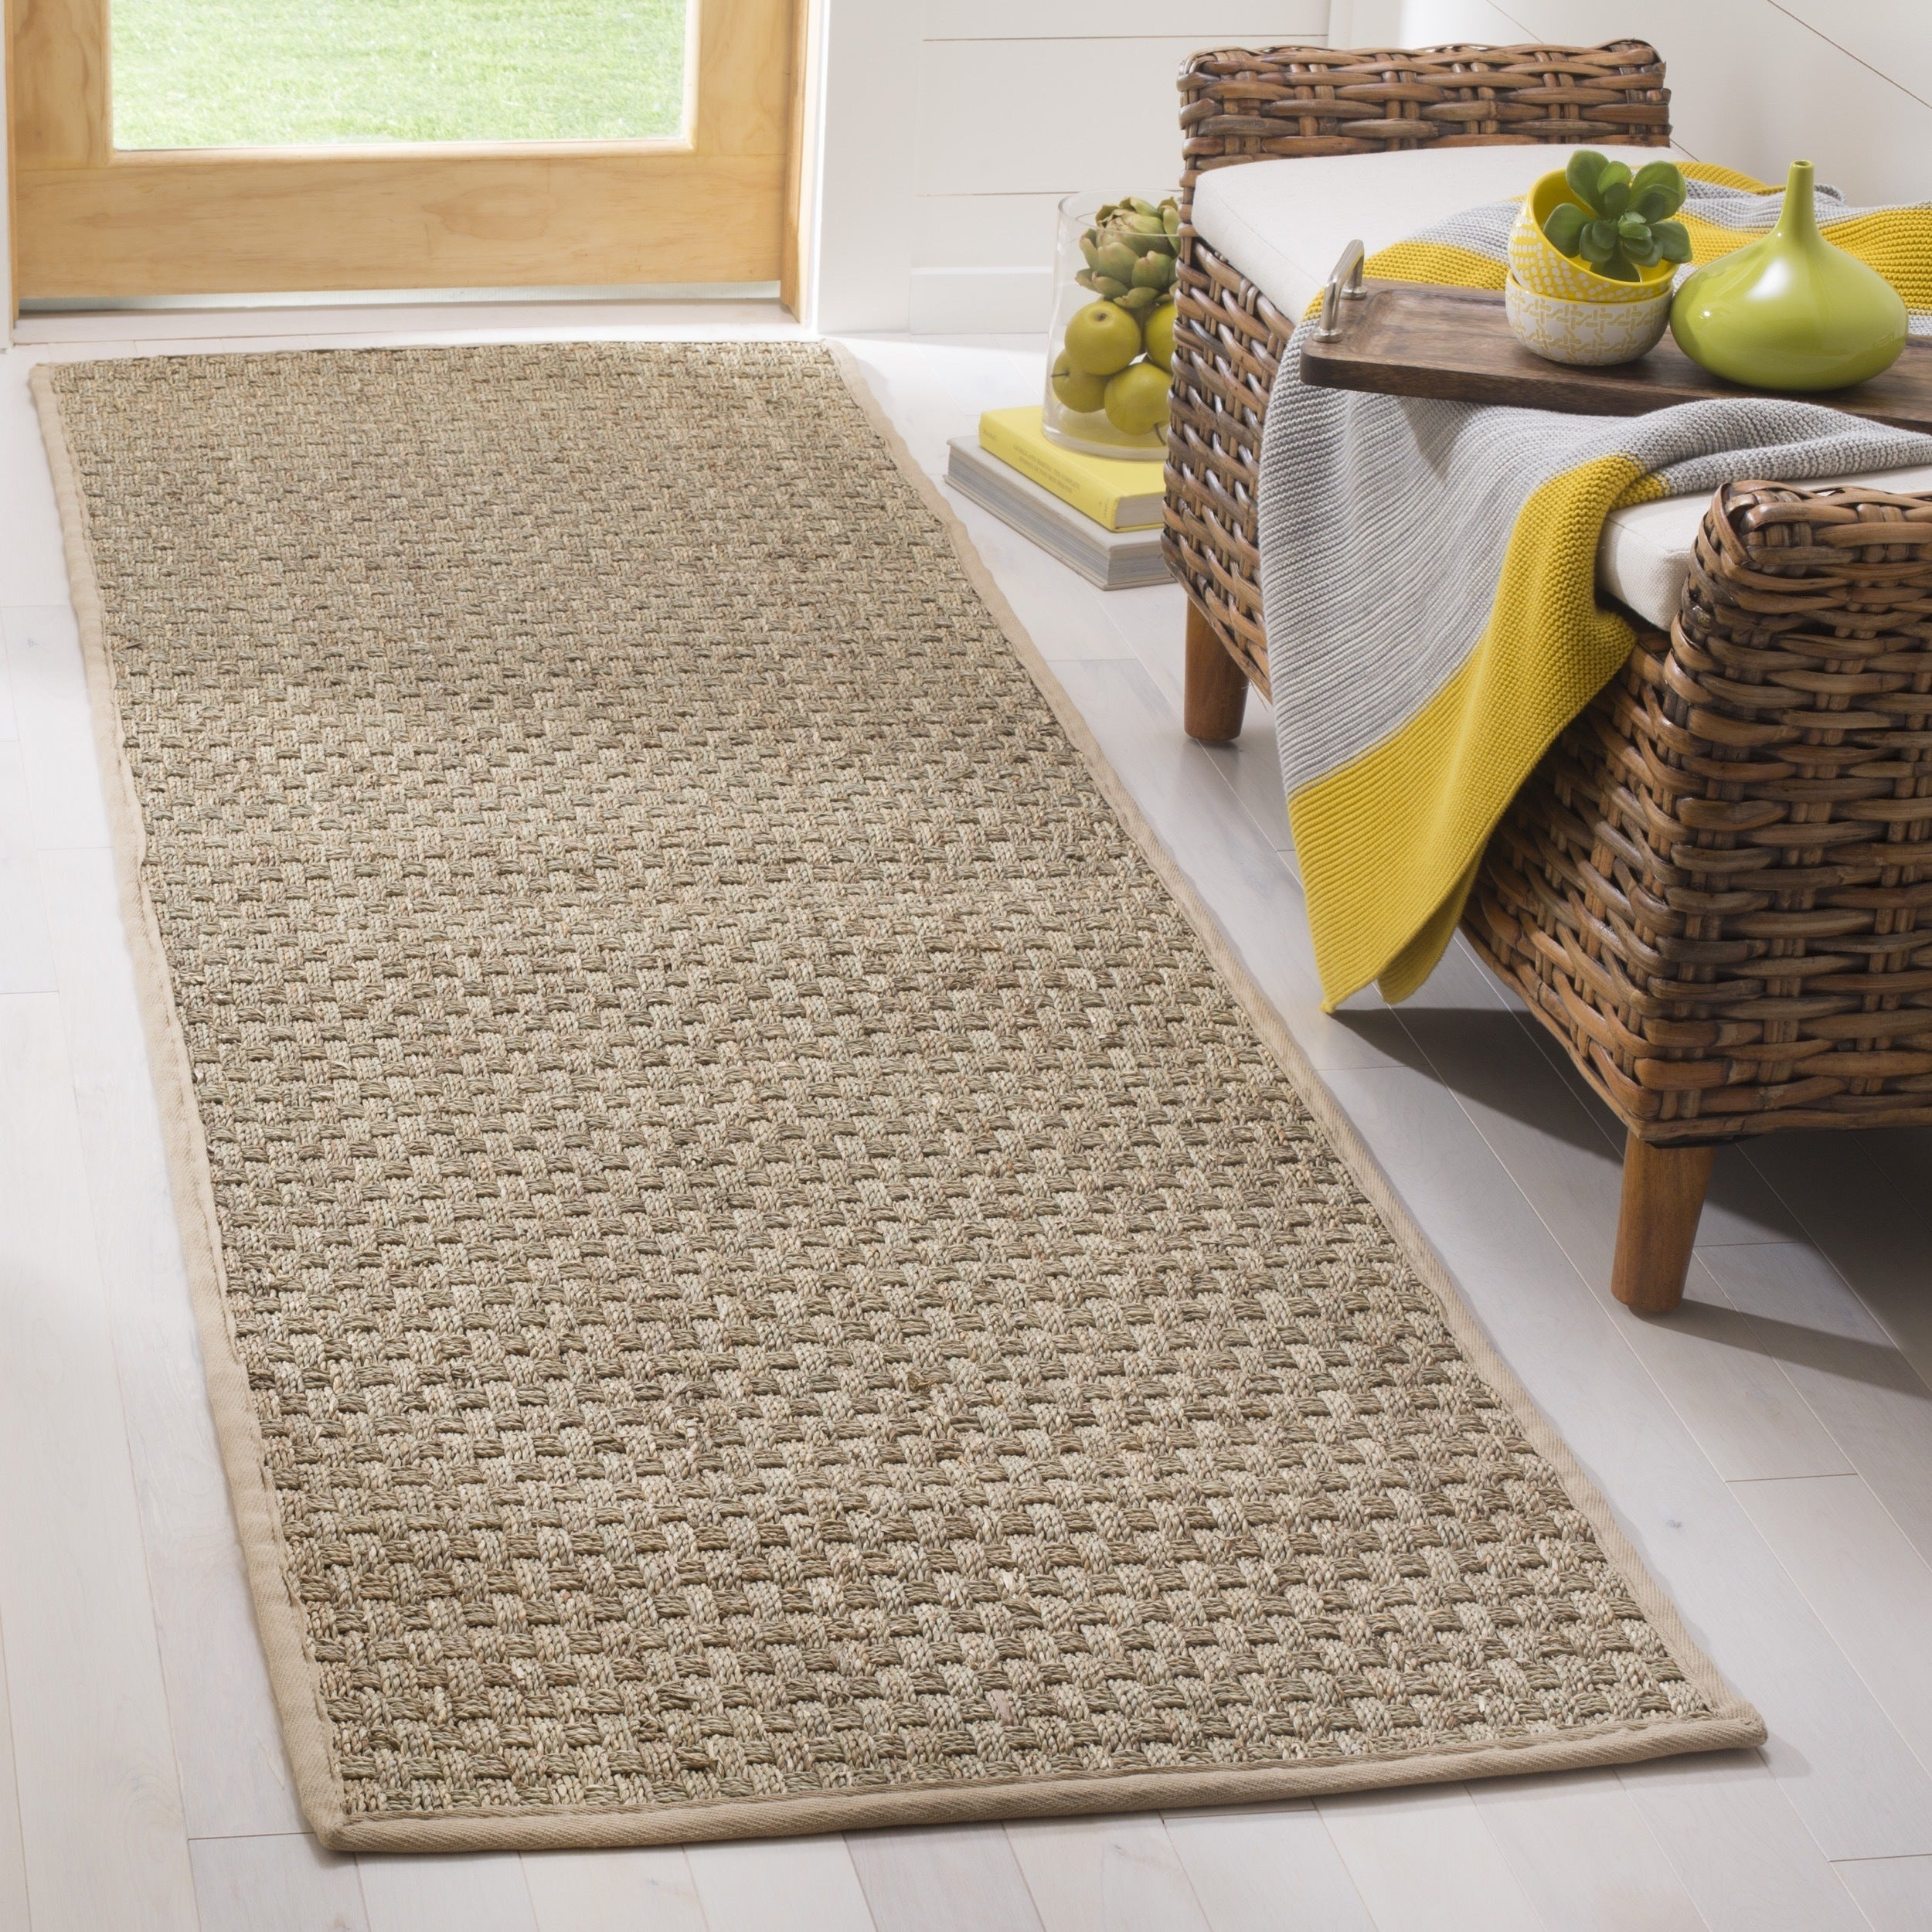 Safavieh Casual Natural Fiber Hand Woven Sisal Beige Seagr Runner Rug 2 6 X 14 Free Shipping Today 12664297